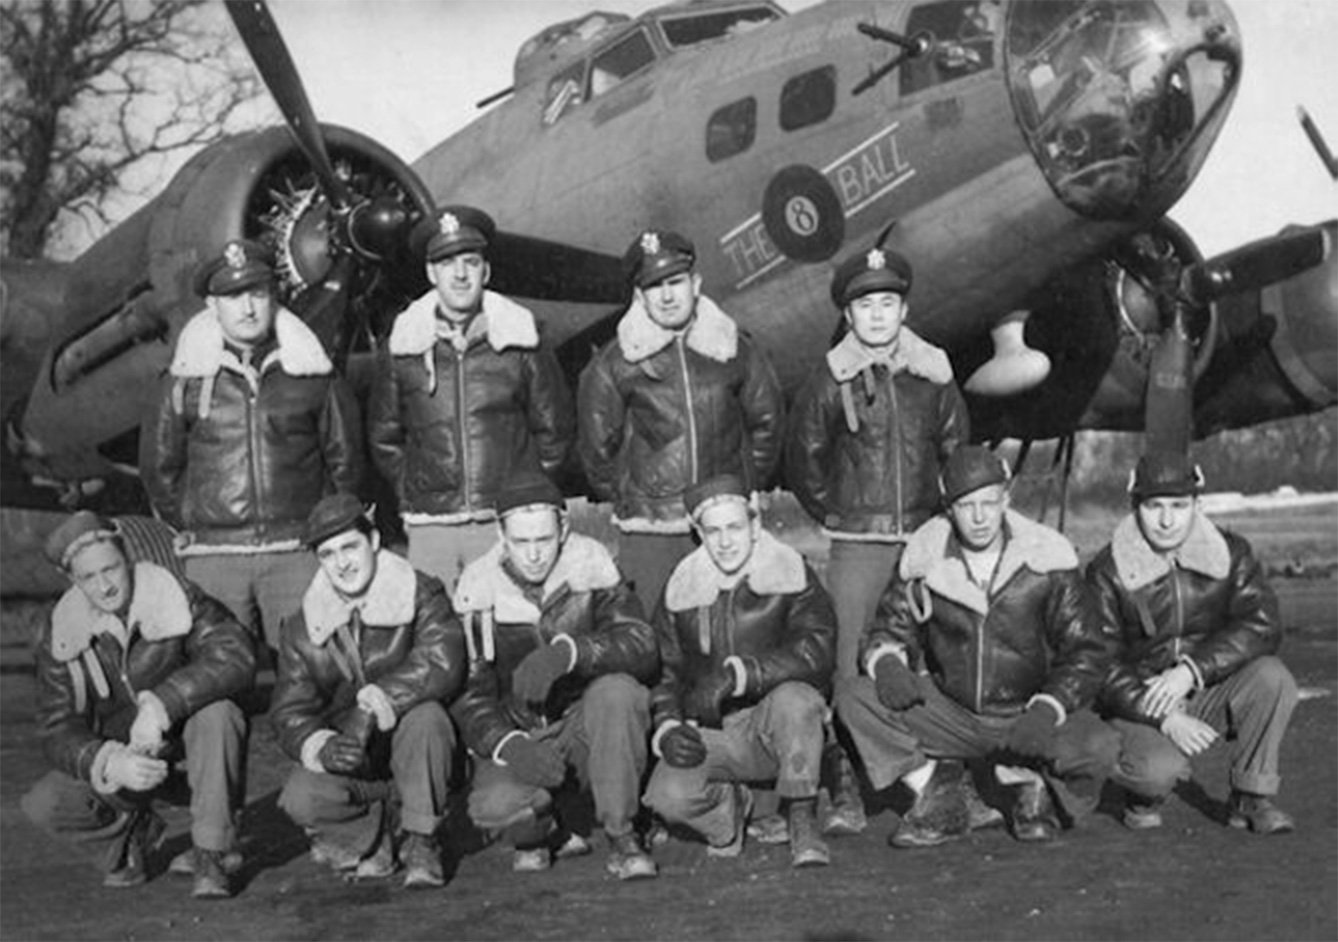 World War 2 pilots wearing Bomber Jackets